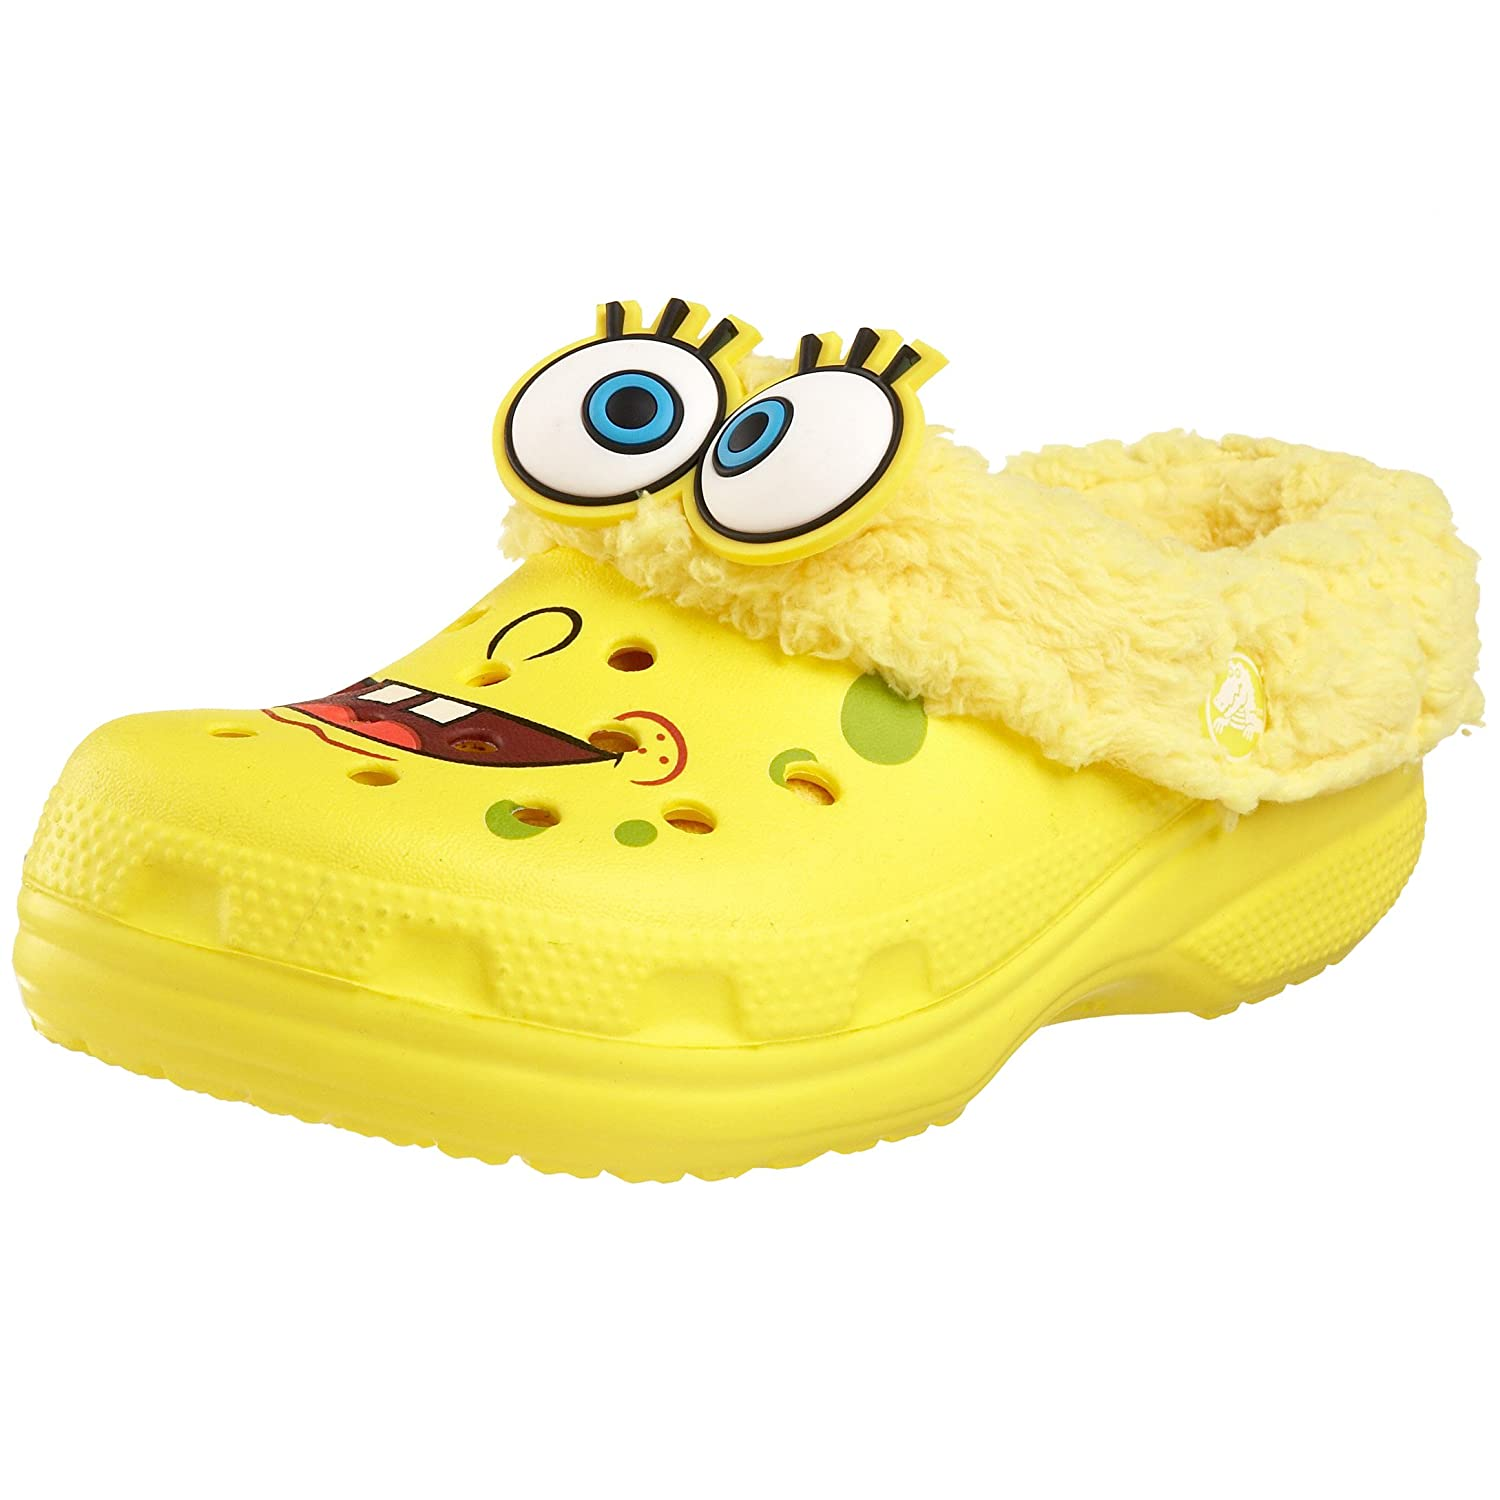 407746a1d354 Crocs Unisex Kids  Casual Yellow Size  5.5 UK-7 UK  Amazon.co.uk  Shoes    Bags